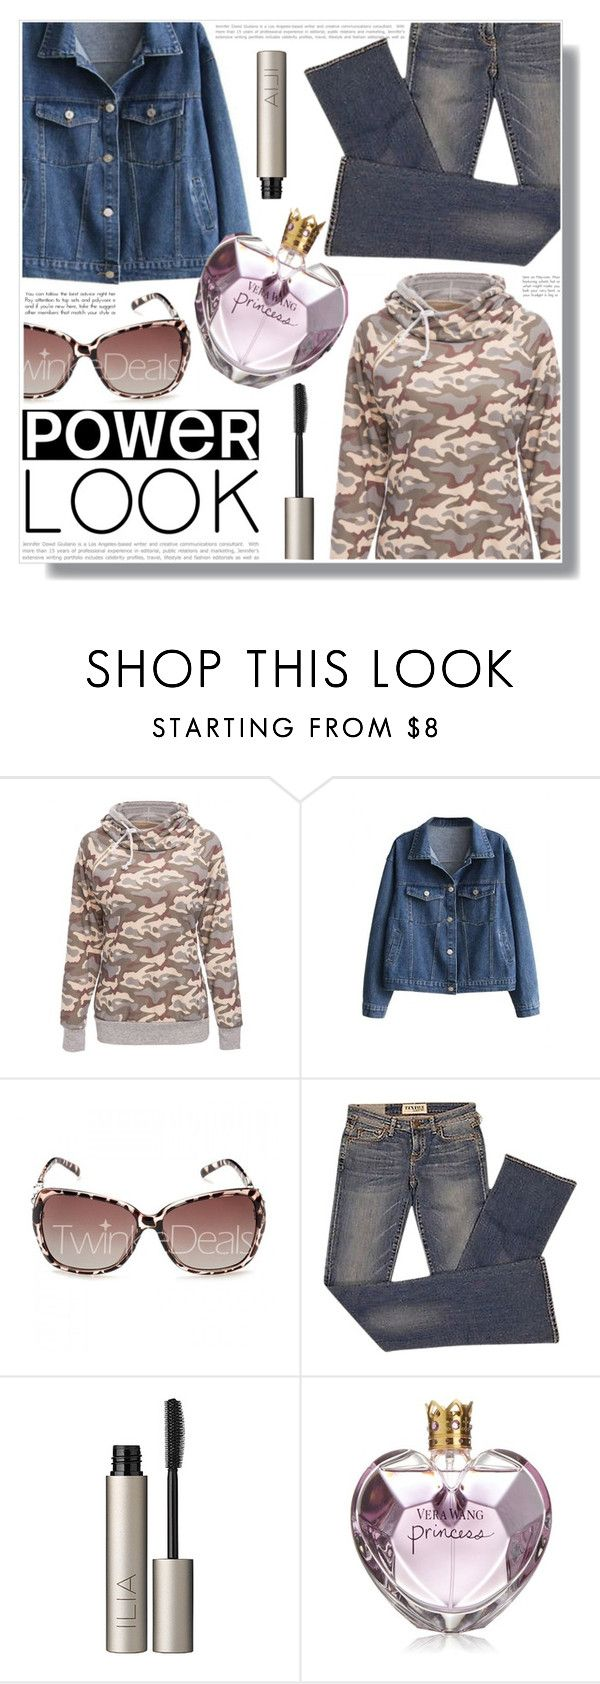 """""""Twinkledeals 40"""" by becky12 ❤ liked on Polyvore featuring Elizabeth and James, Ilia, Vera Wang, denim, camouflage and twinkledeals"""